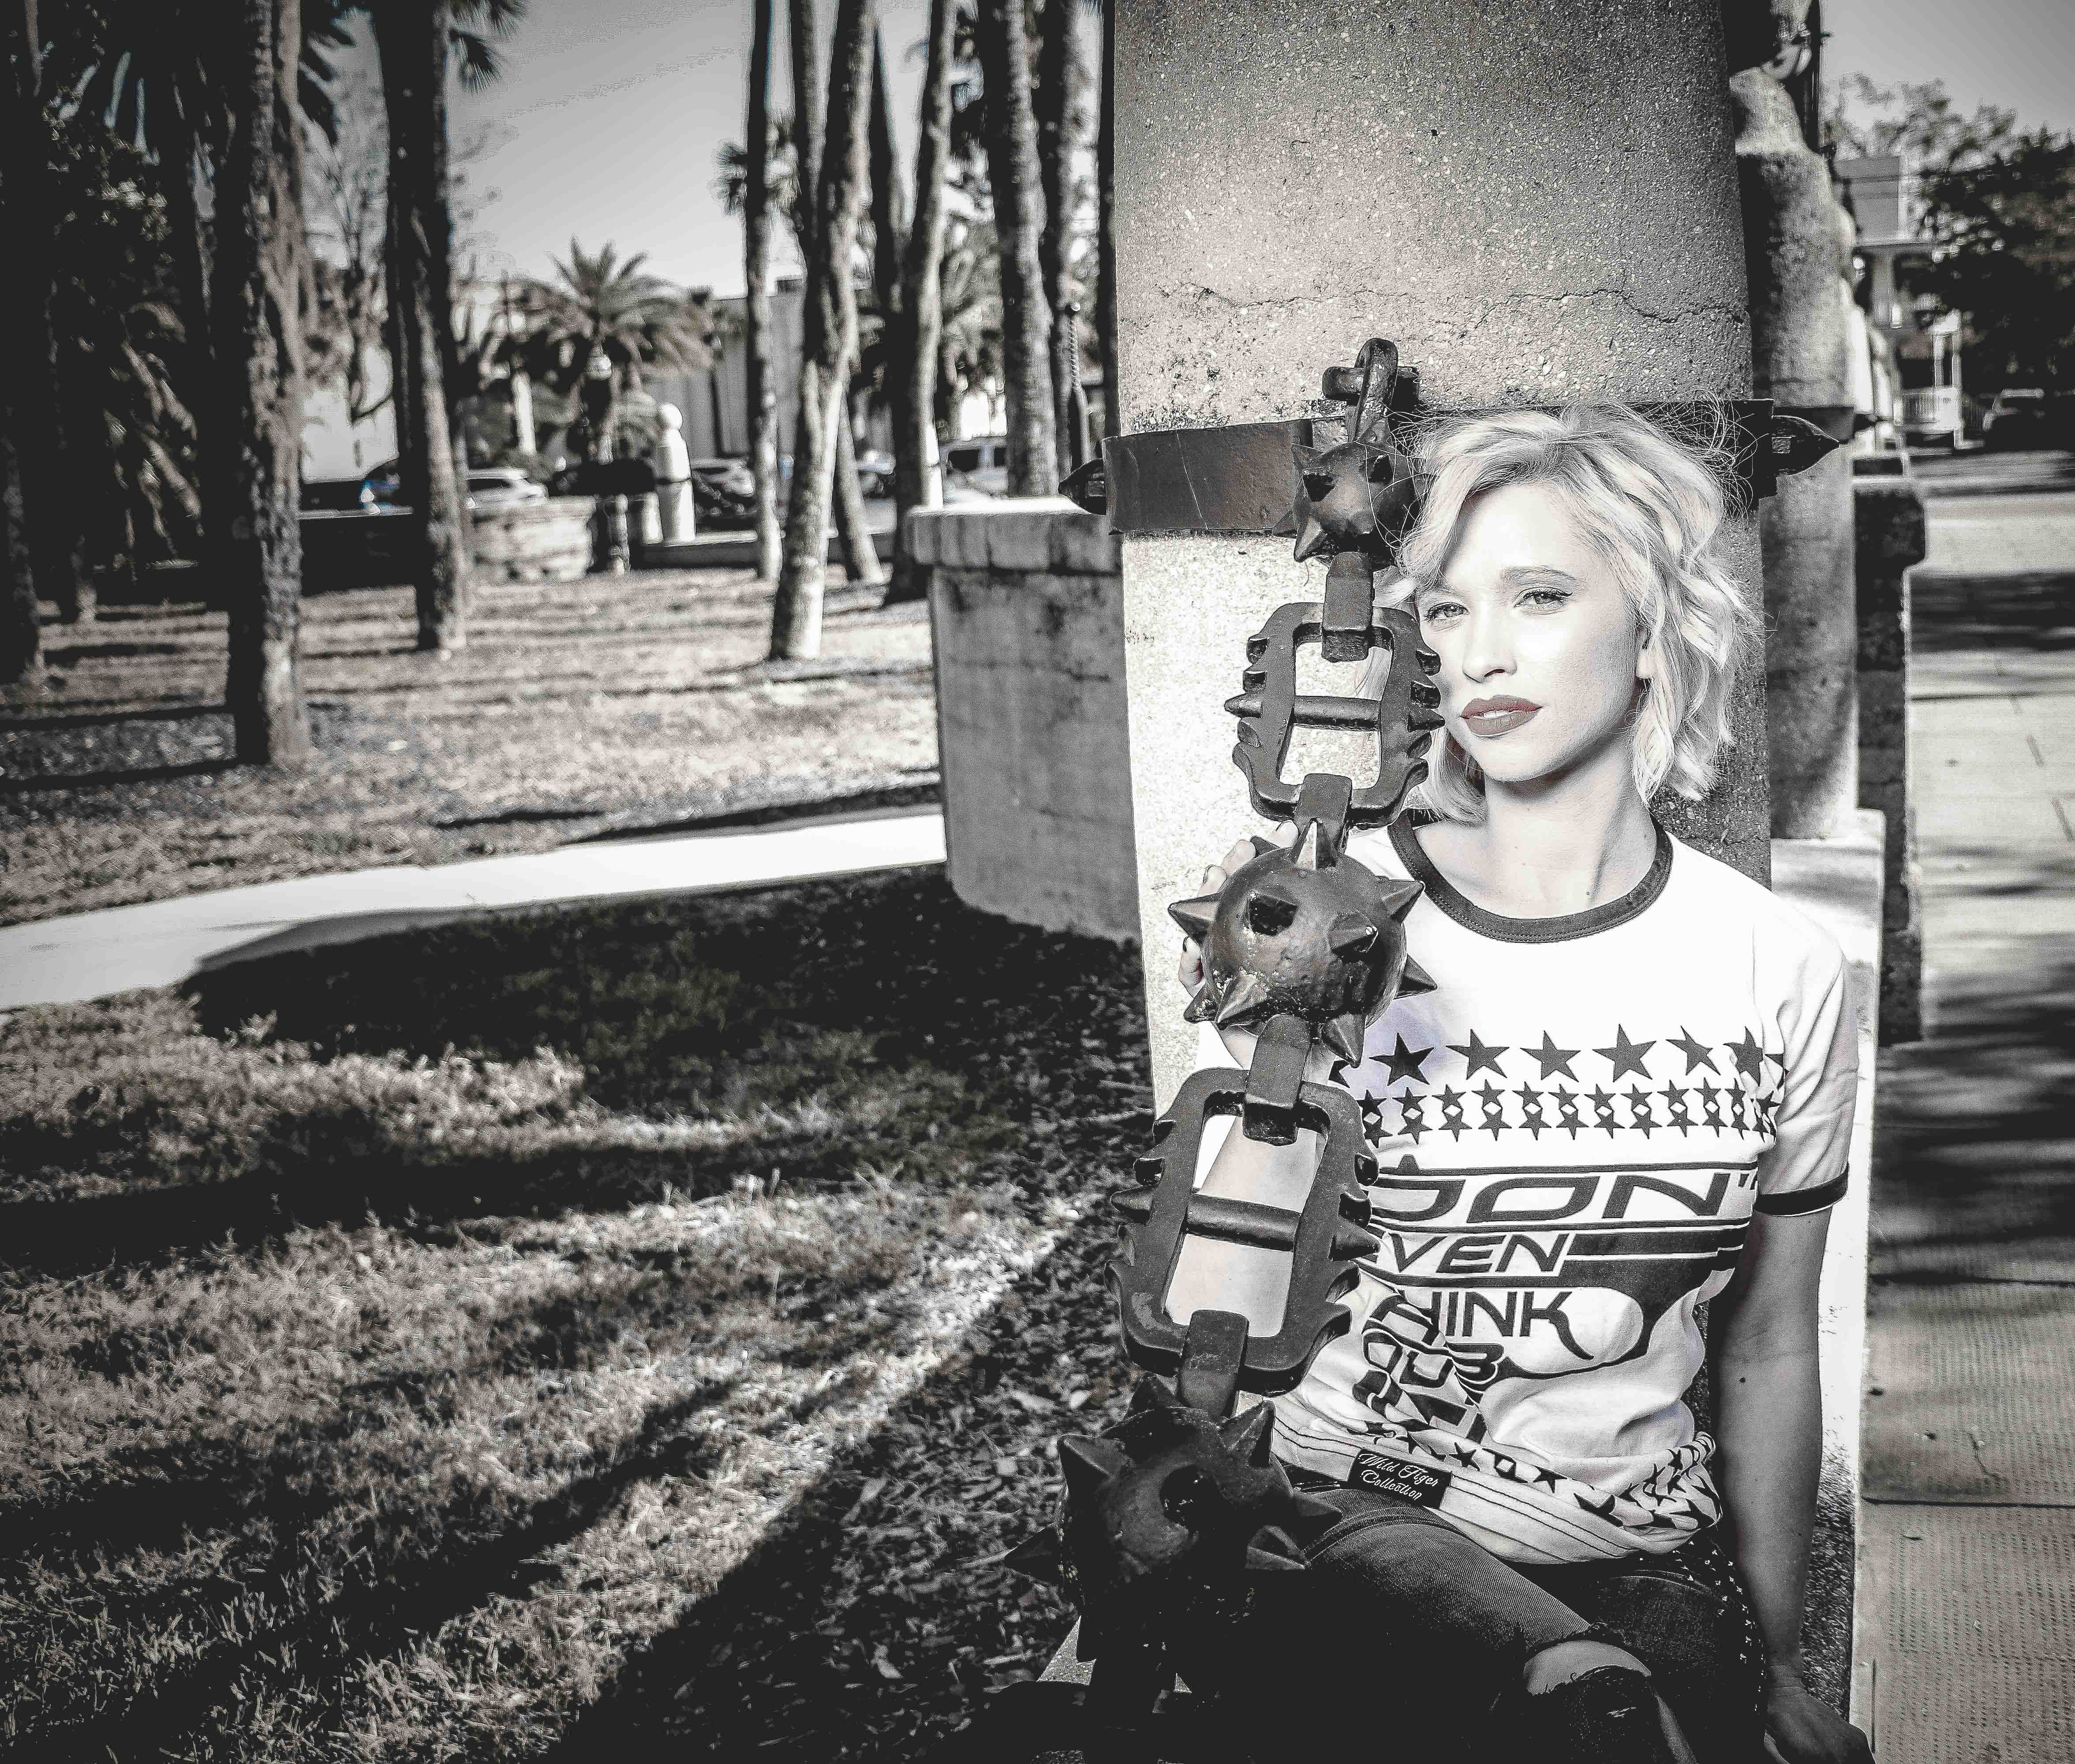 Woman Sitting Beside Gray Concrete Post Grayscale Photo